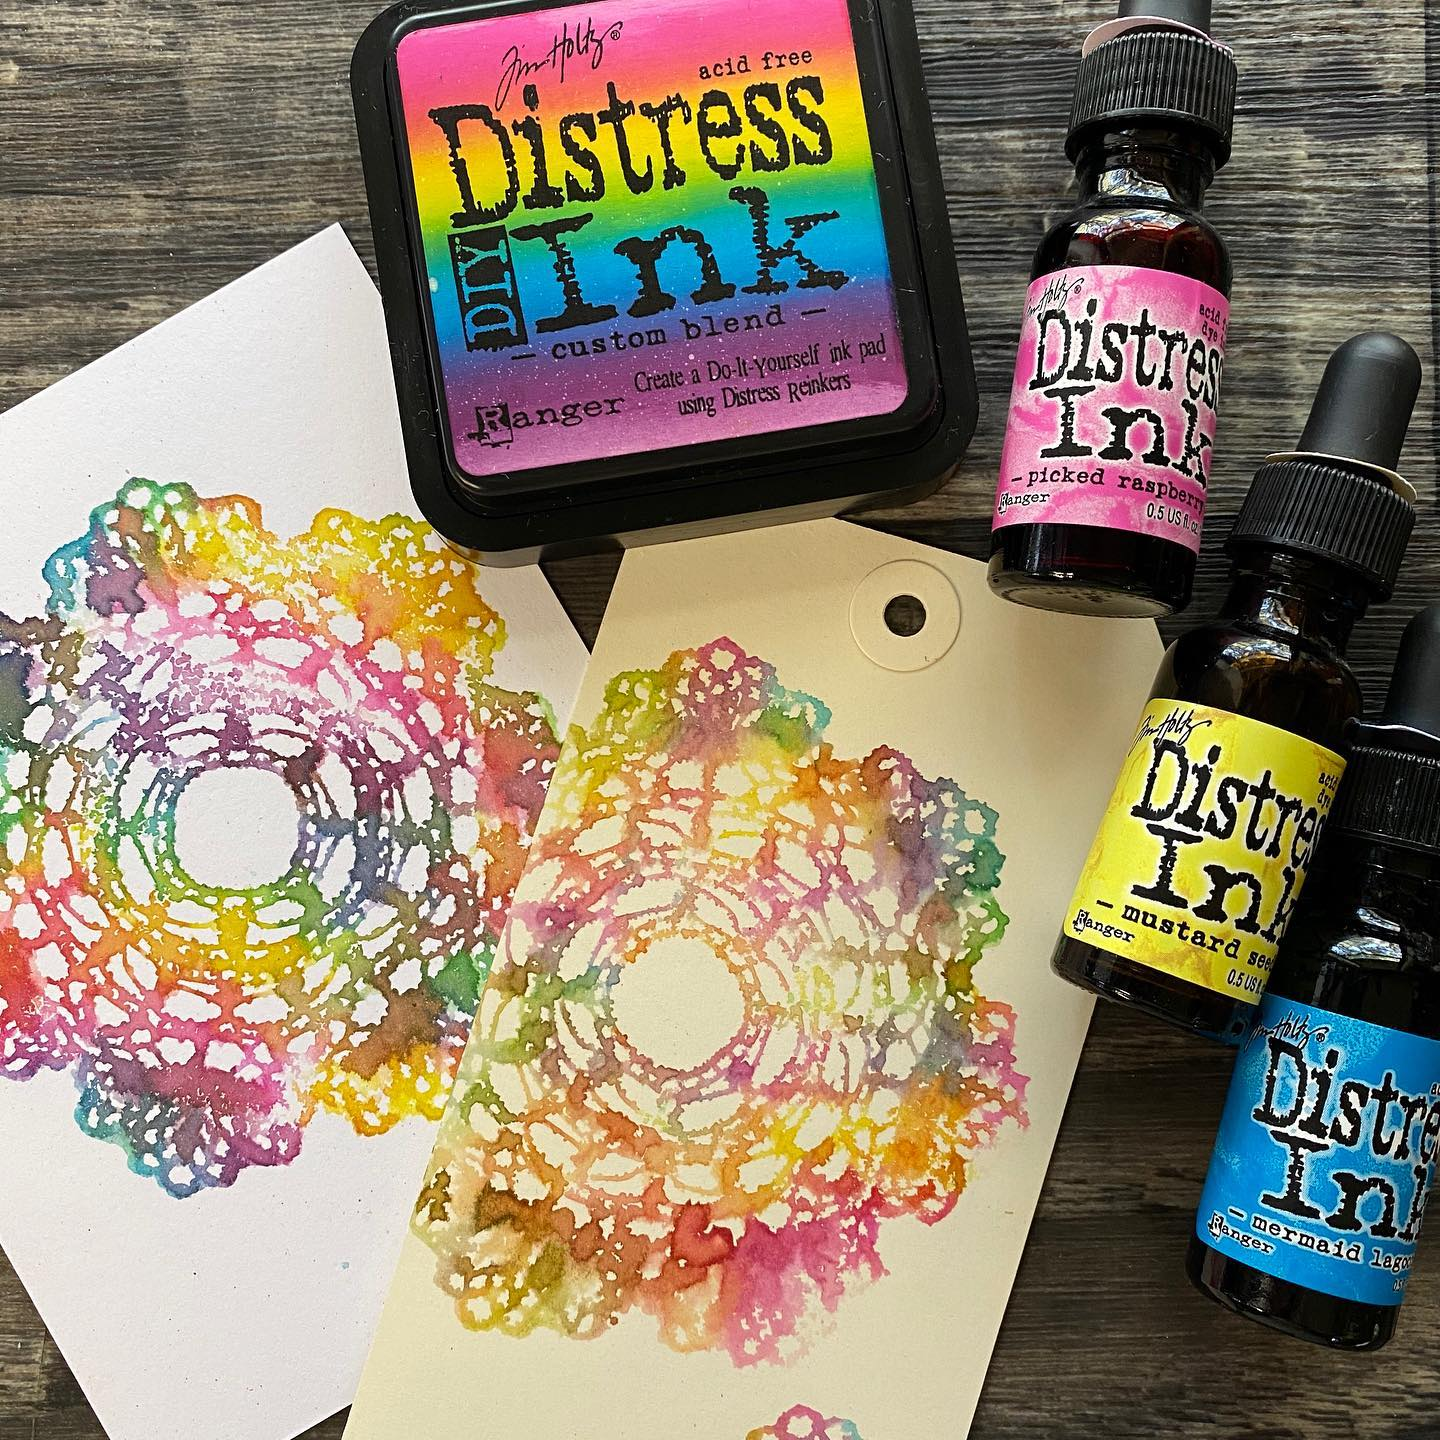 Tim Holtz - Distress Inkpad Re-Inkers